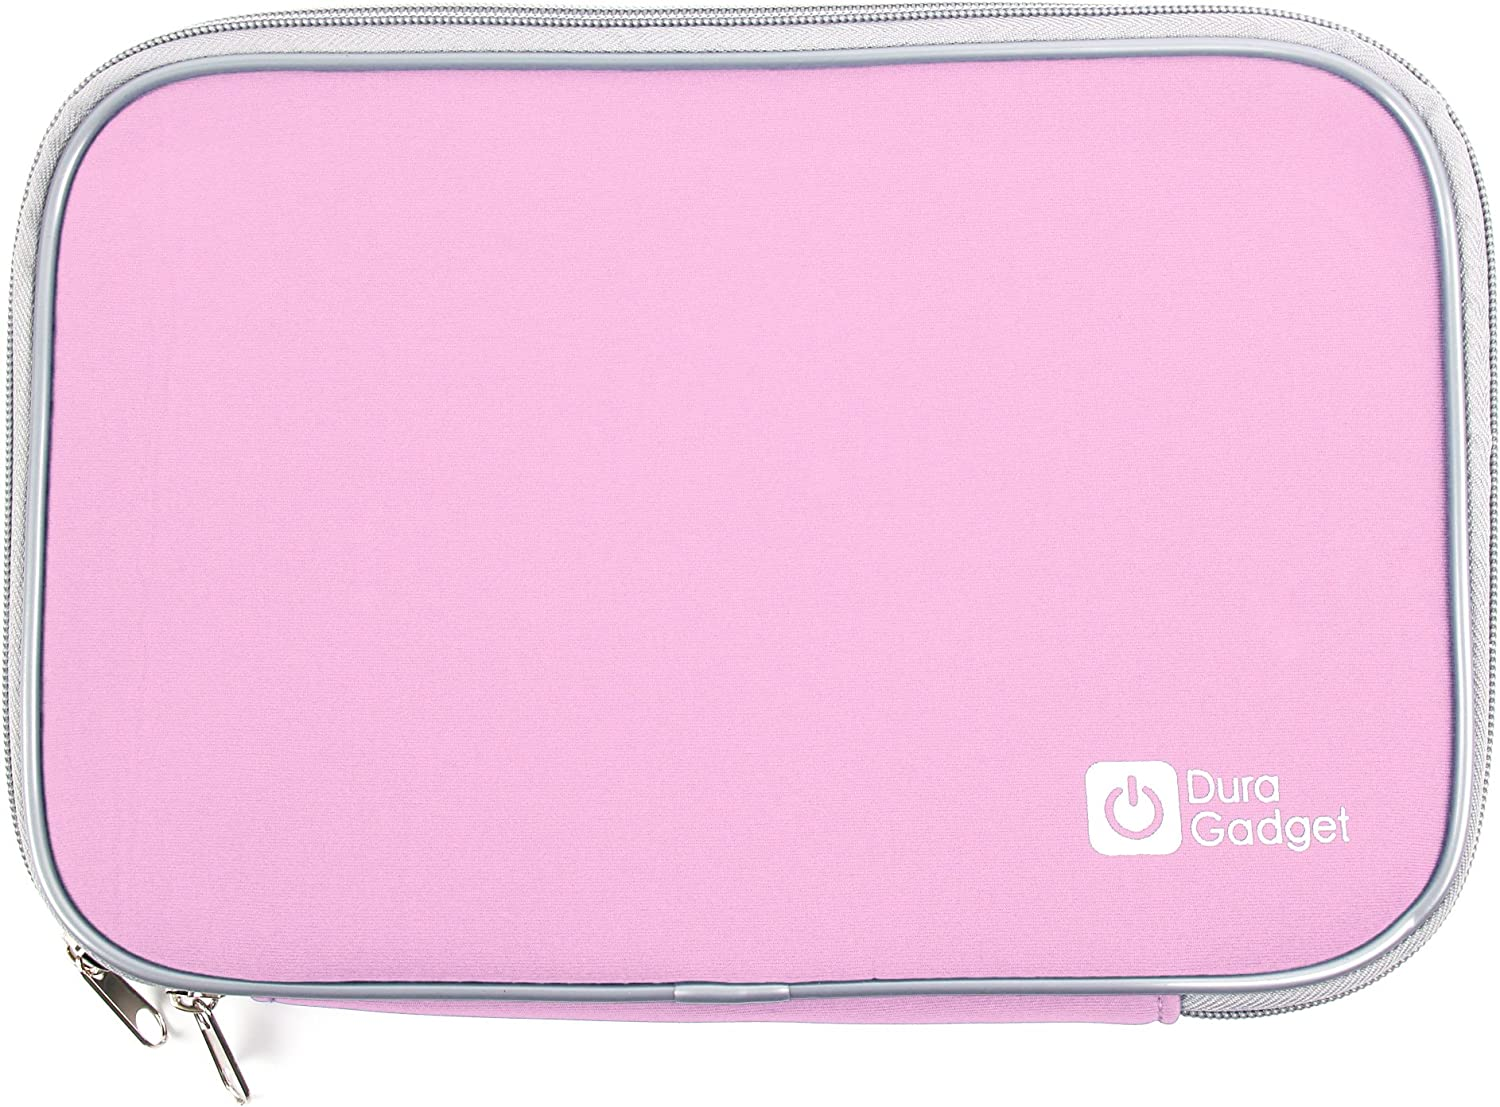 DURAGADGET Secure Pink Water Resilient Neoprene Case - Compatible with Acer Iconia W3 | Iconia A3/Hannspree Tablet PC SN97T41W/TrekStor SurfTab ventos | SurfTab Xiron | SurfTab Ventos